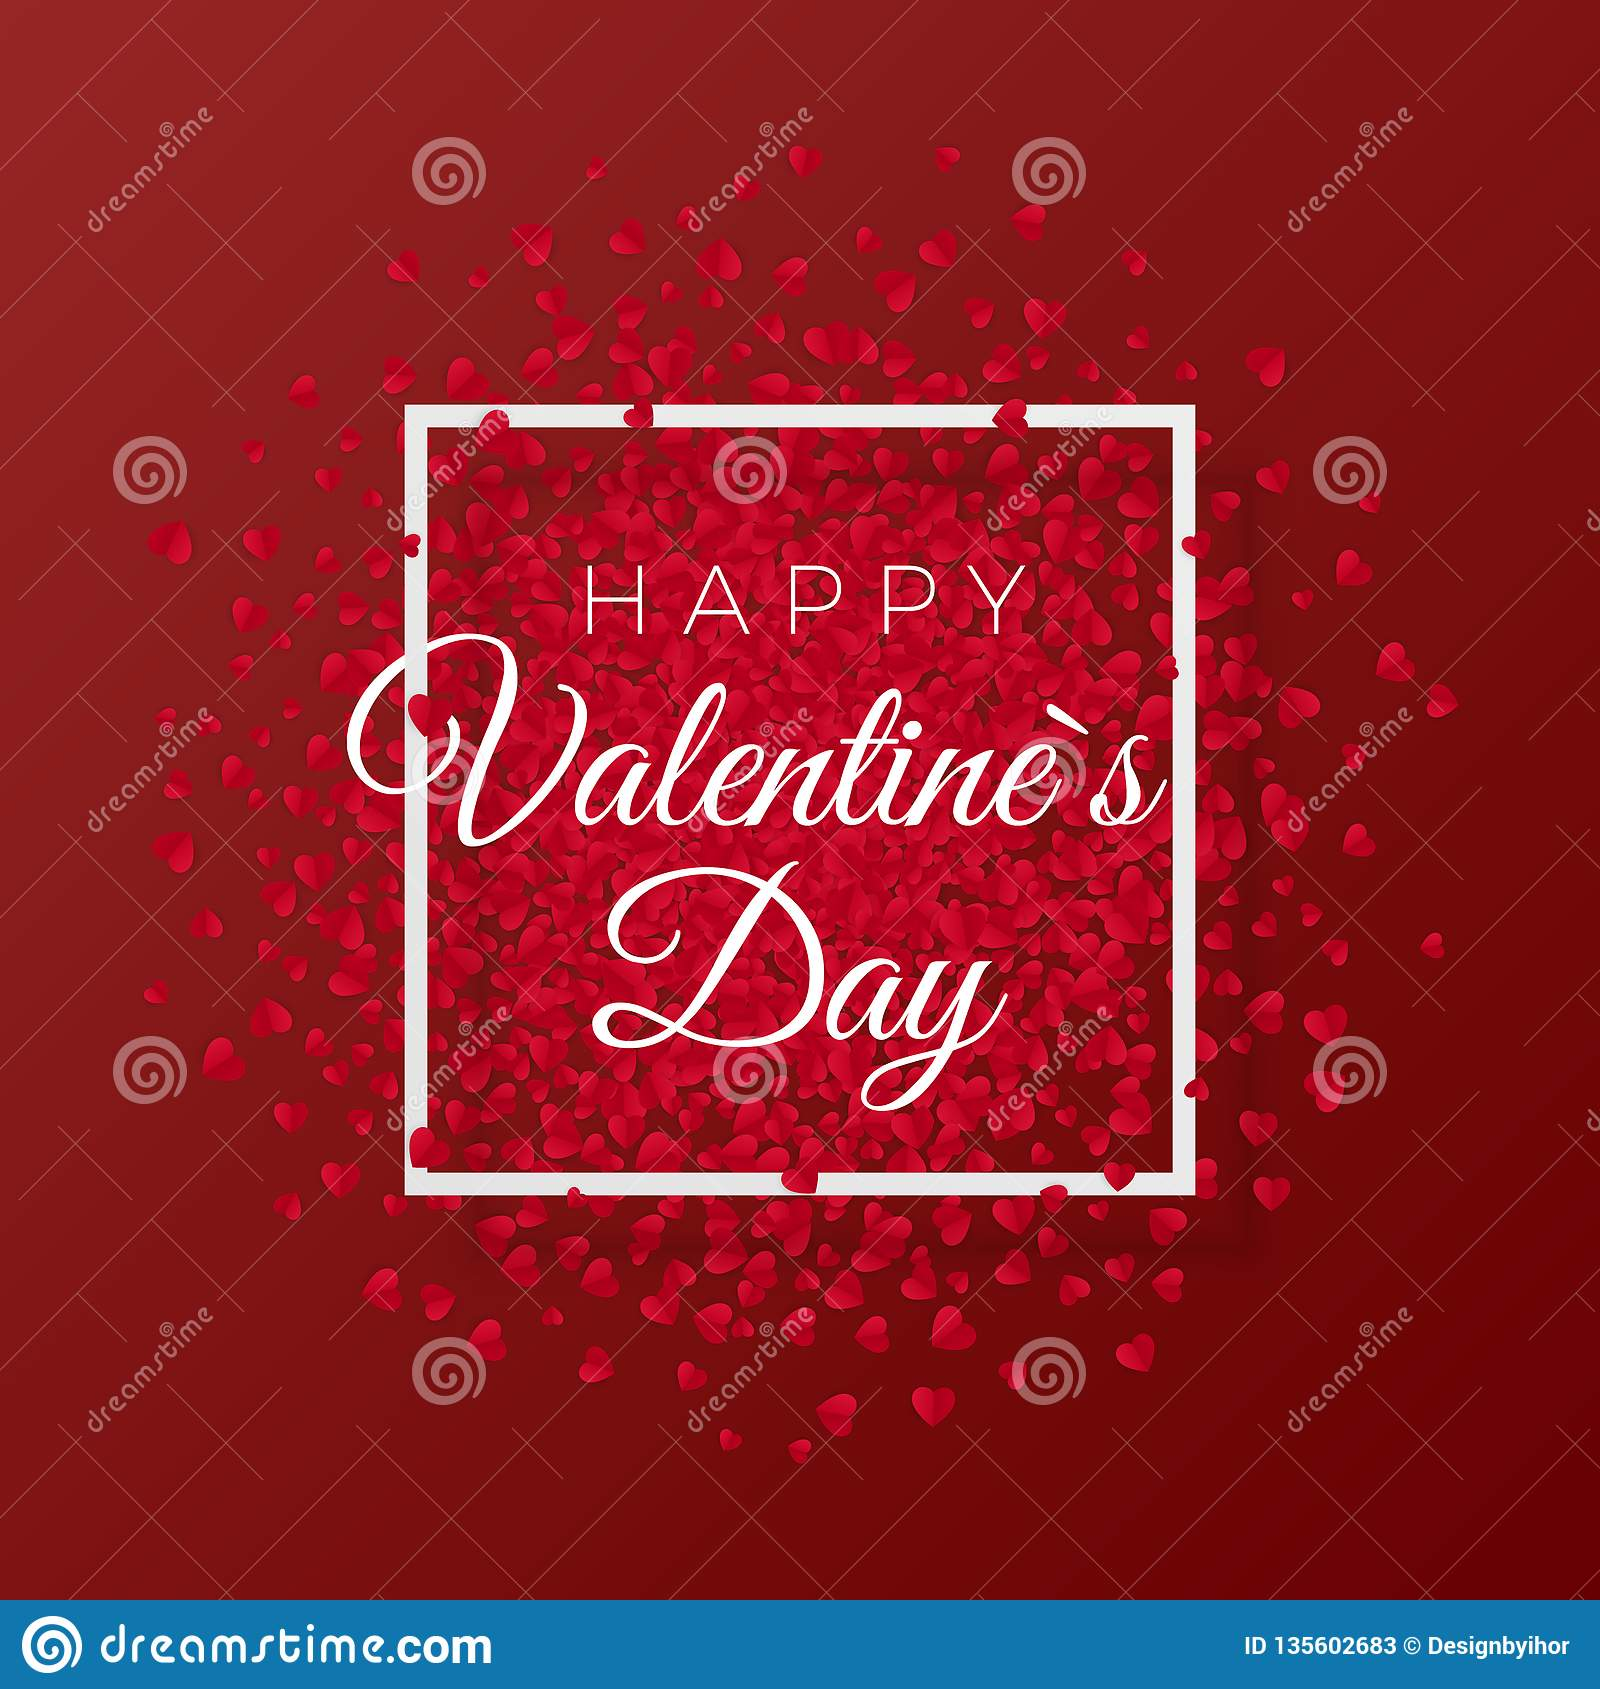 Happy valentines day and weeding romantic design elements. Red background with hearts ornament. Vector illustration